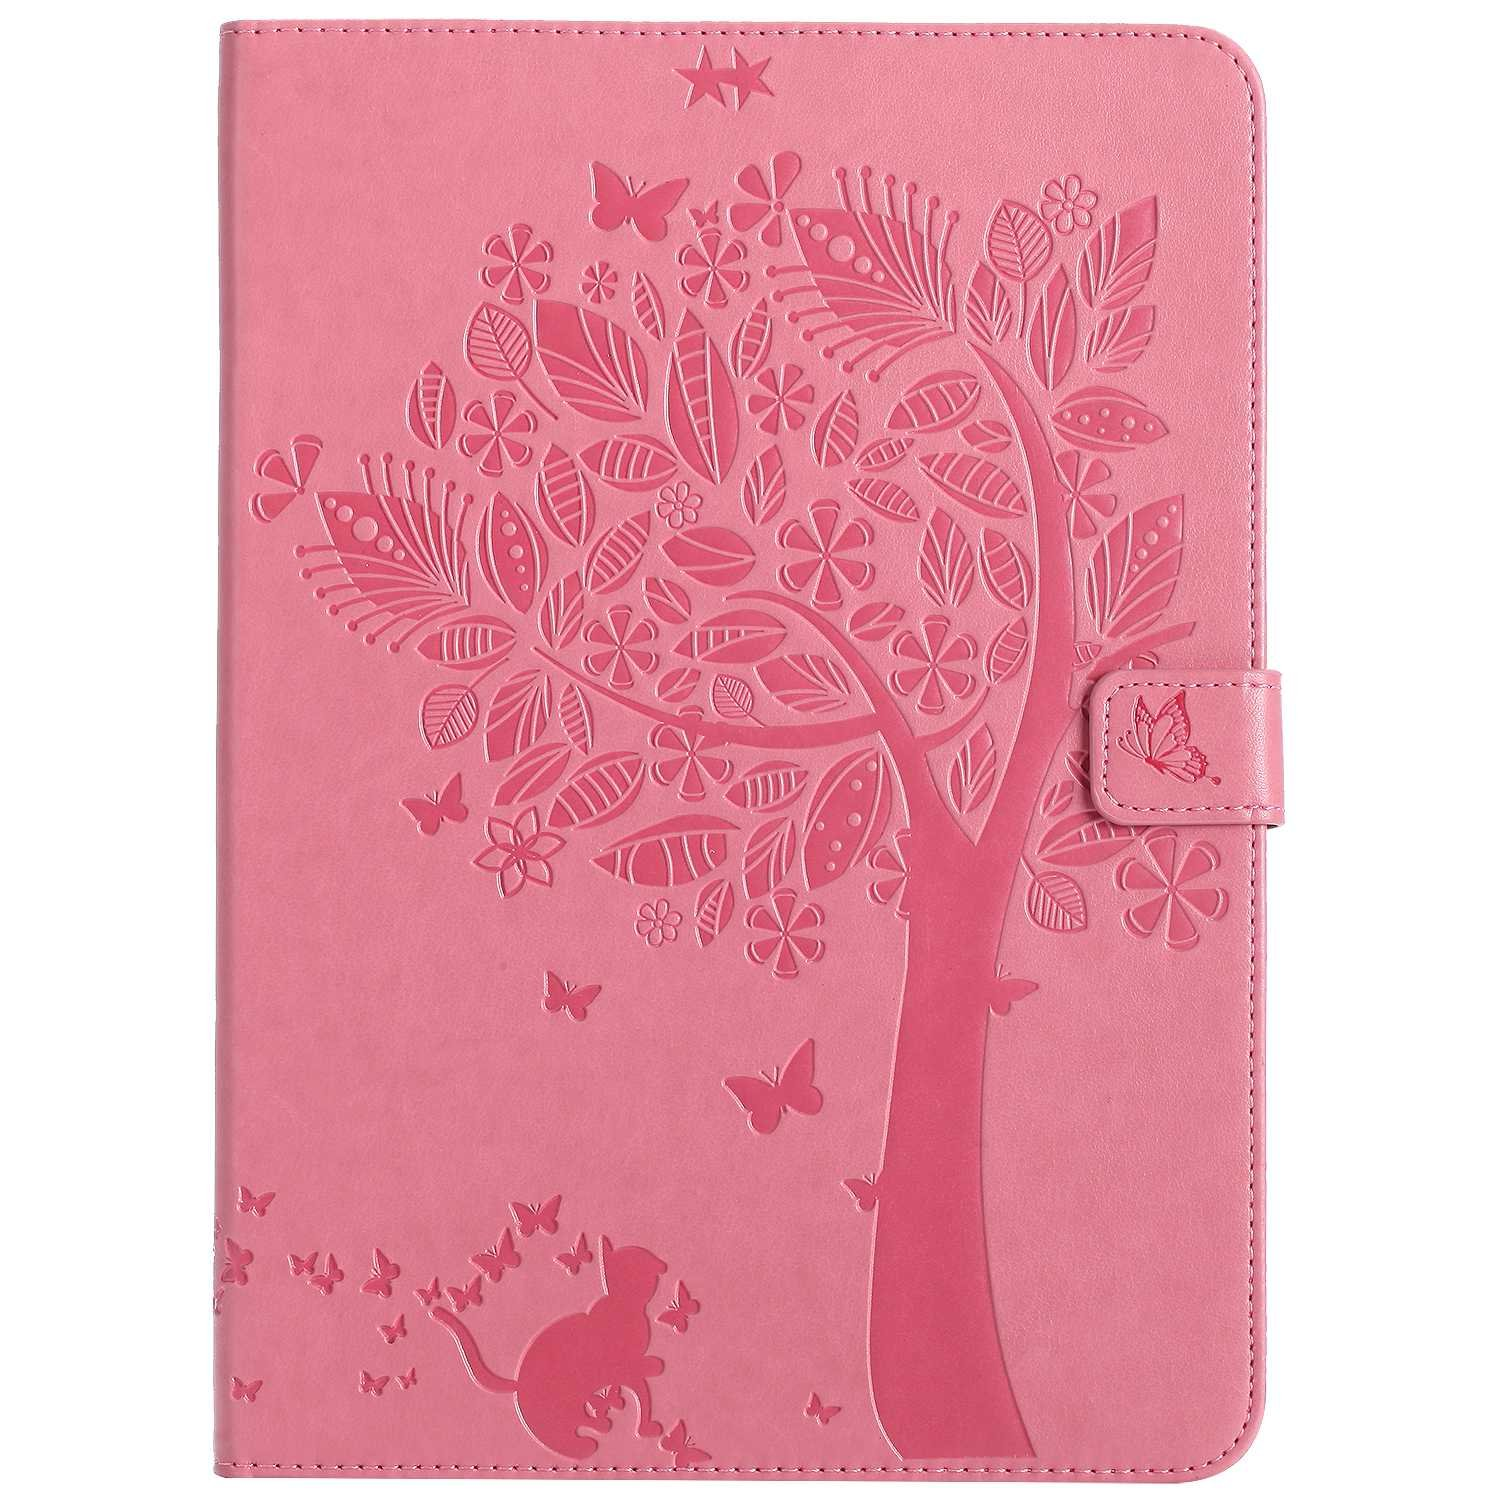 Bear Village iPad 2017 / iPad 2018 (9.7 Inch) Case, Leather Magnetic Case, Fullbody Protective Cover with Stand Function for Apple iPad 2017 / iPad 2018 (9.7 Inch), Pink